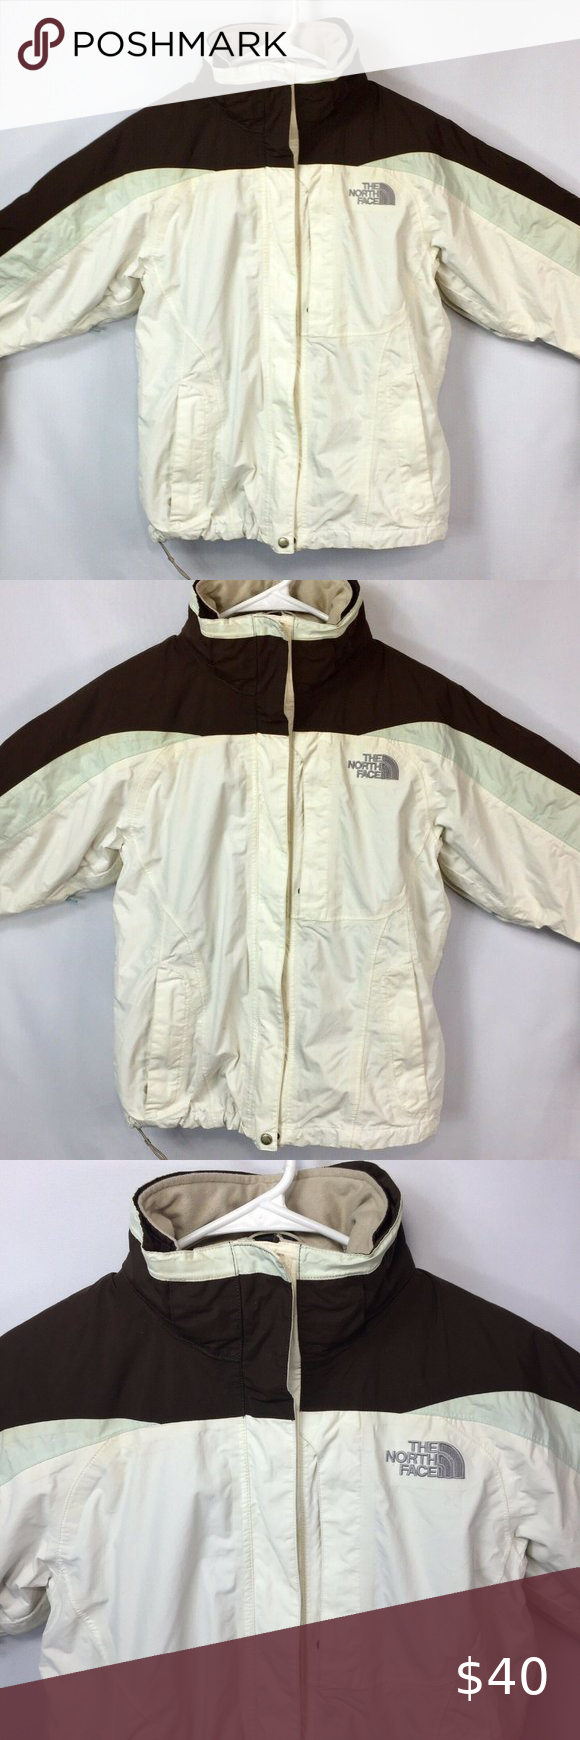 The North Face Hyvent Ski Jacket 2 In 1 Womens The North Face Hyvent Ski Jacket 2 In 1 Brown Cream M Condition Is North Face Hyvent Ski Jacket The North Face [ 1740 x 580 Pixel ]